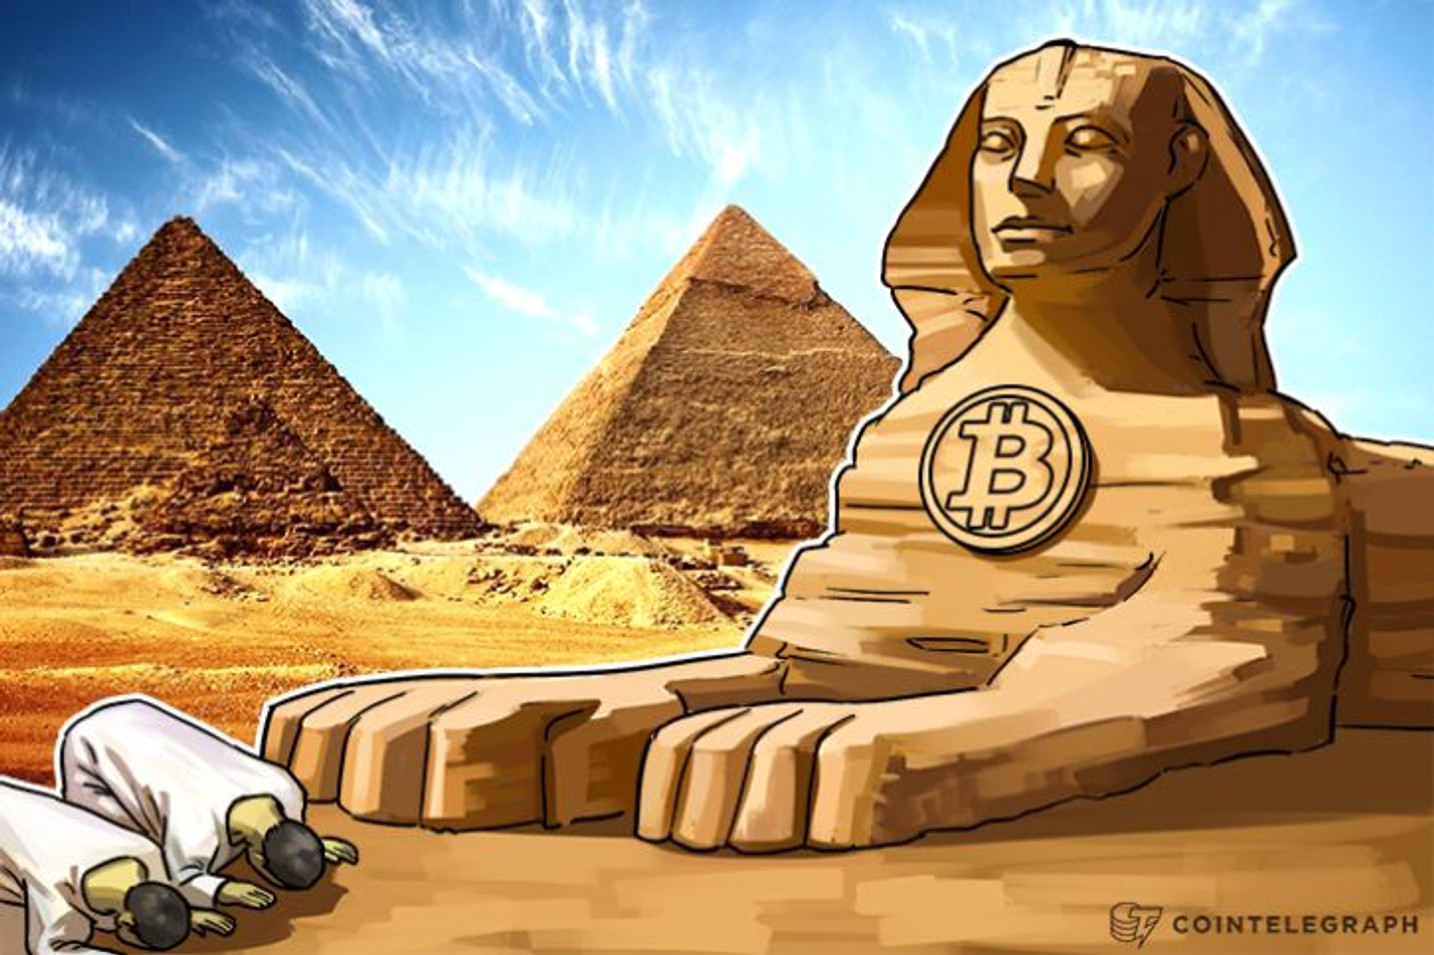 Egypt's Top Cleric Declares Bitcoin Trading 'Unlawful'